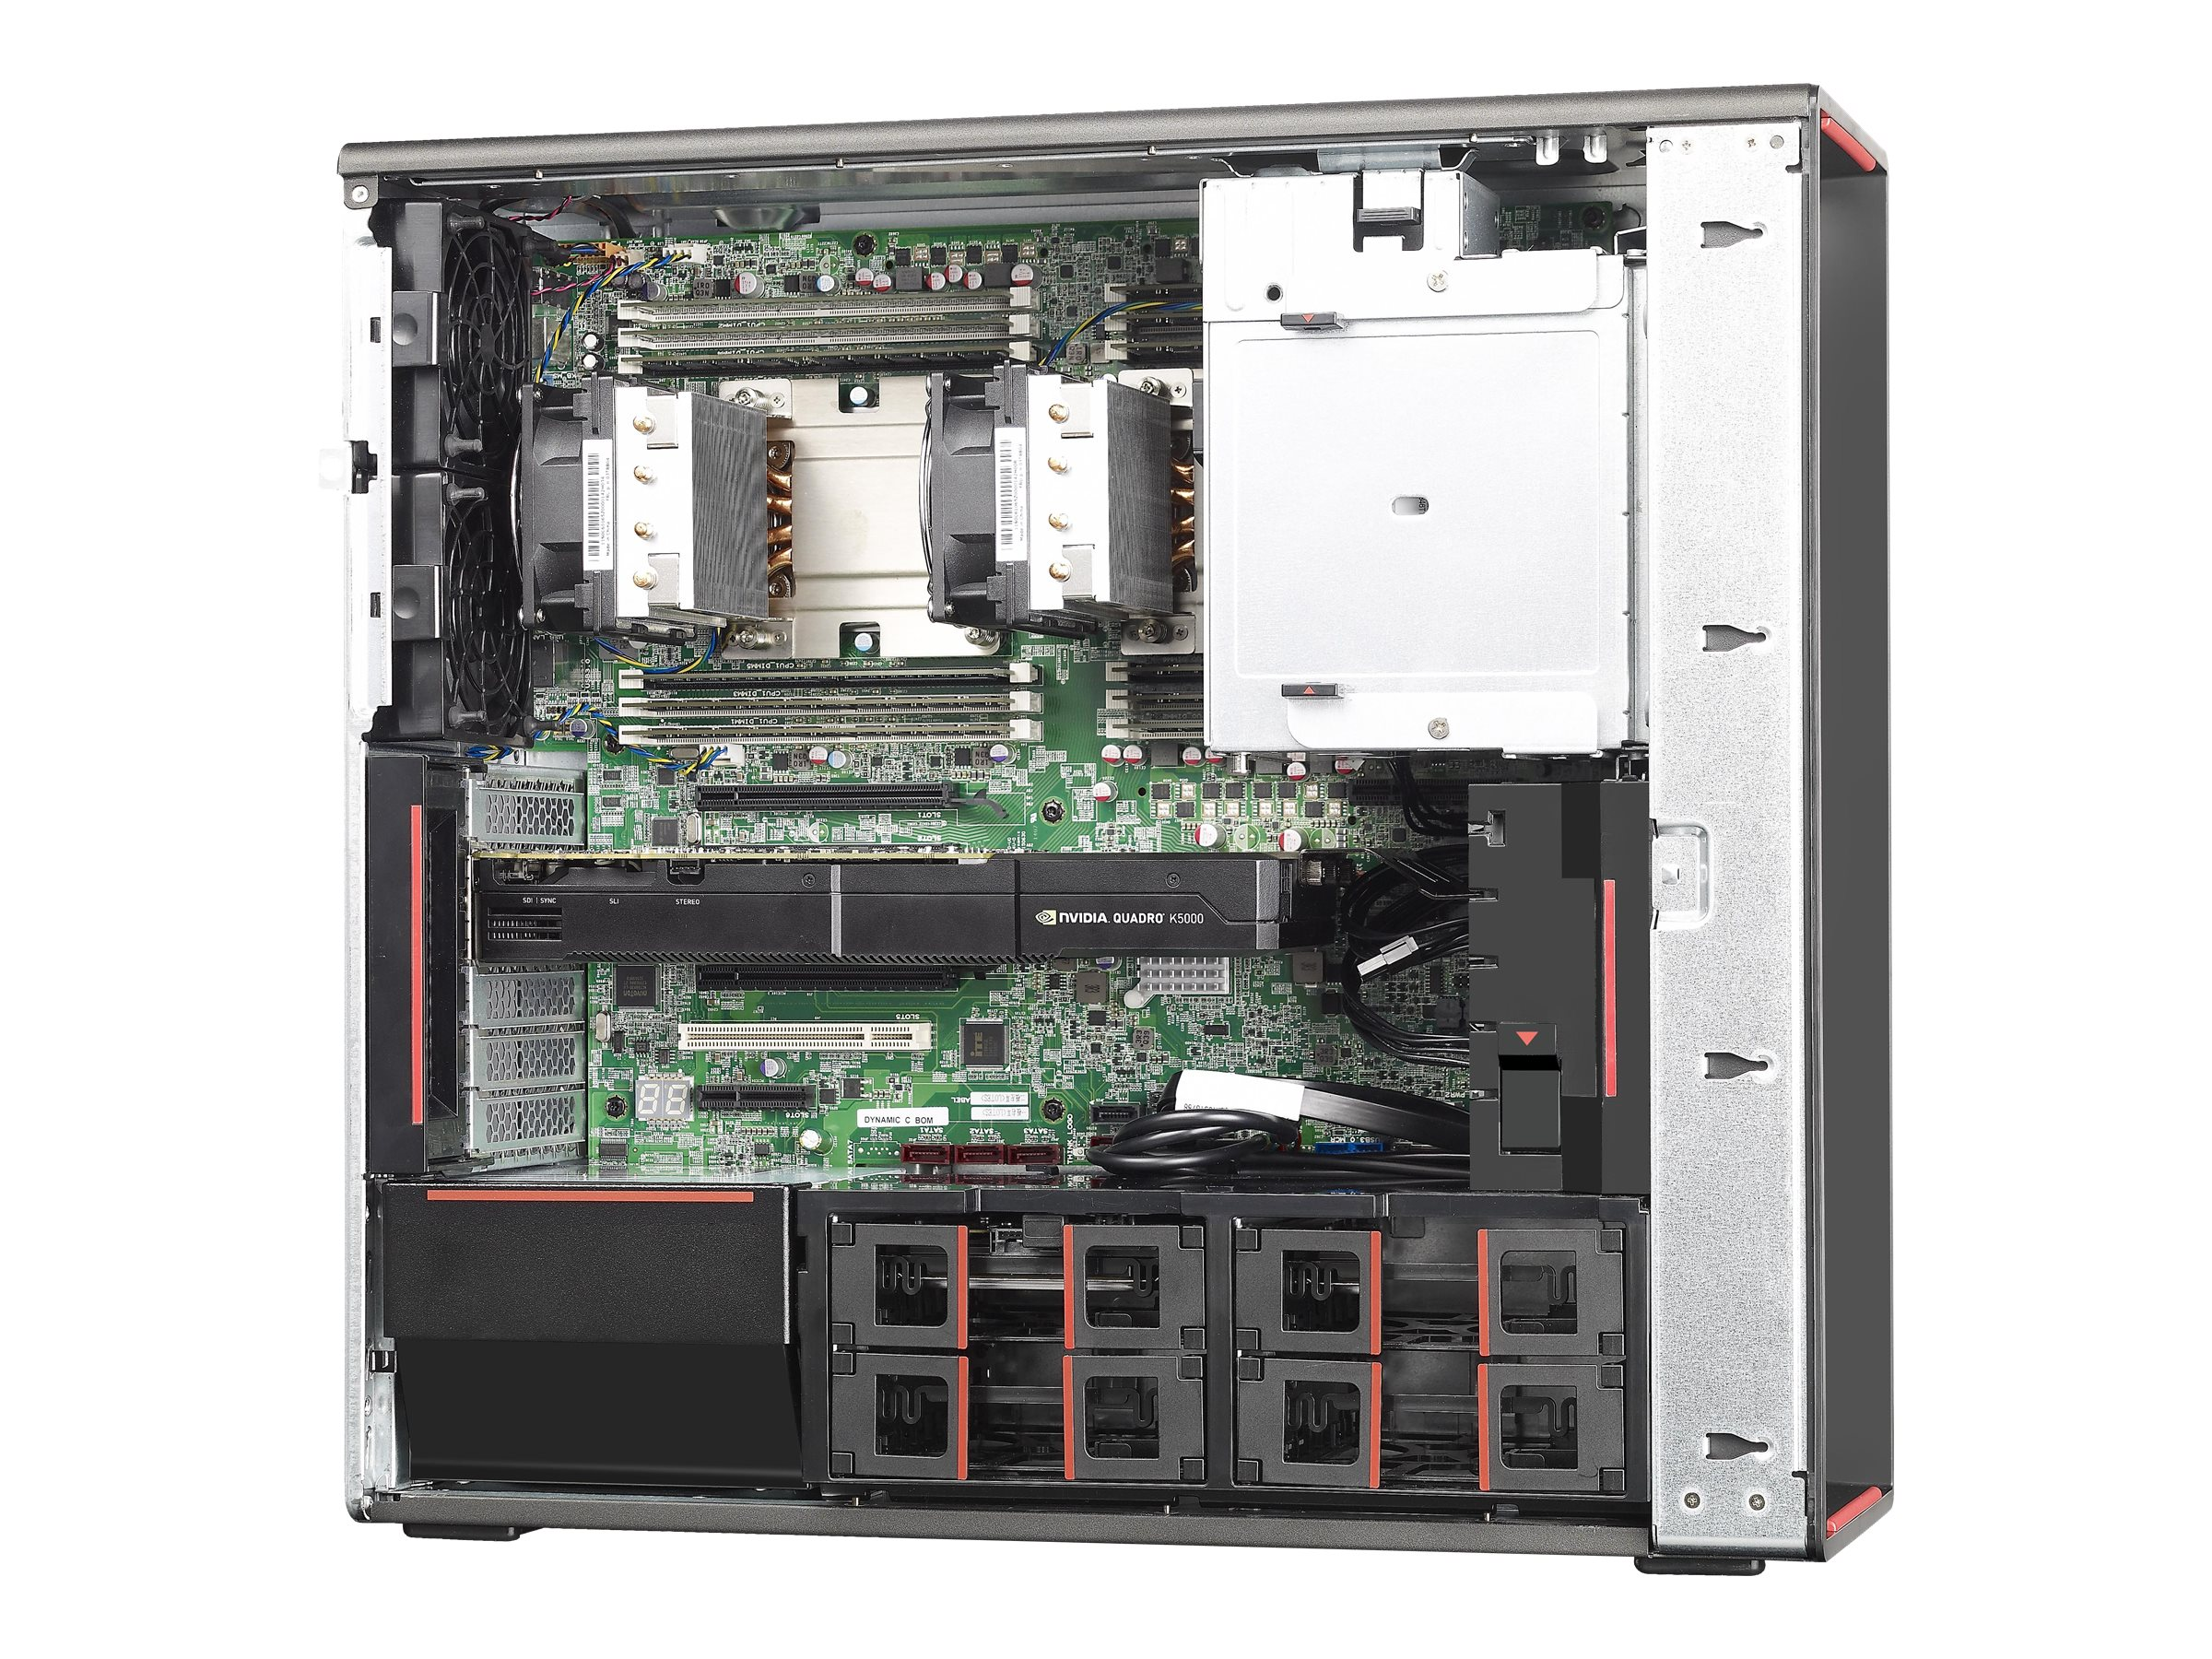 Lenovo TopSeller ThinkStation P710 Tower Xeon 12C E5-2650 v4 2.1GHz 16GB 256GB SSD 1TB M4000 DVD SM W10P64, 30B7001MUS